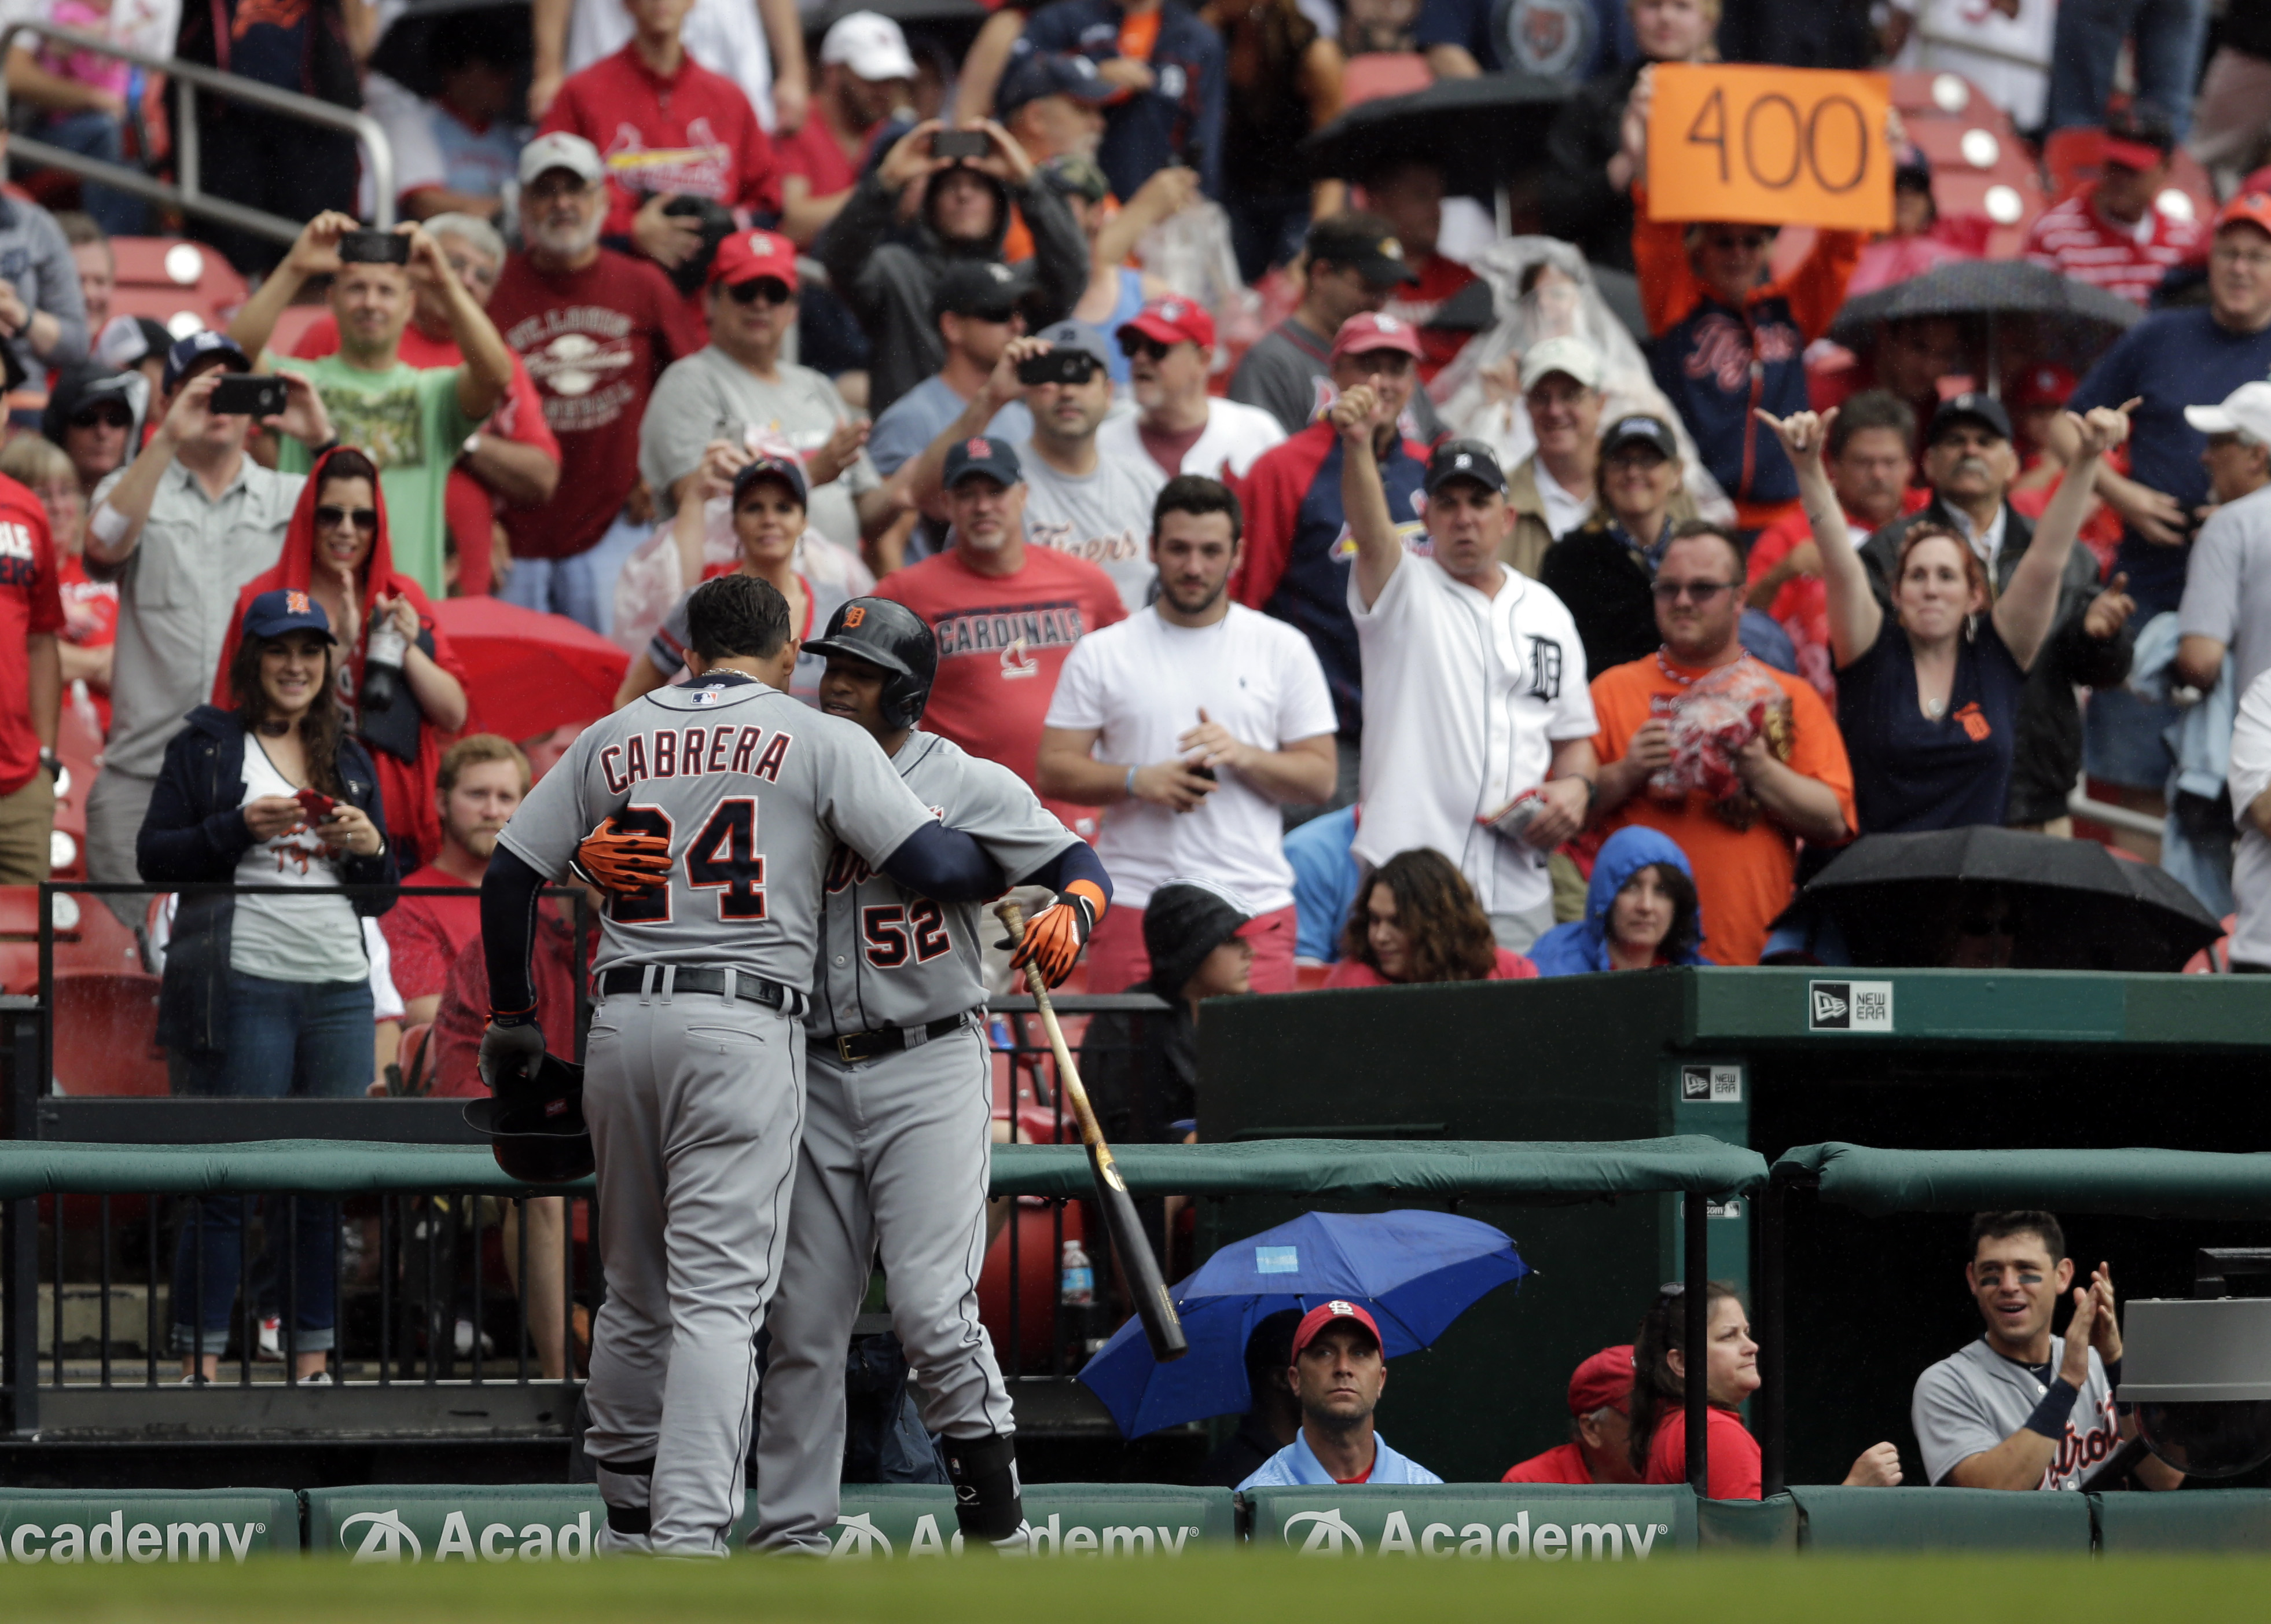 Detroit Tigers' Miguel Cabrera (24) gets a hug from teammate Yoenis Cespedes after hitting a solo home run during the first inning of a baseball game against the St. Louis Cardinals, Saturday, May 16, 2015, in St. Louis. (AP Photo/Jeff Roberson)